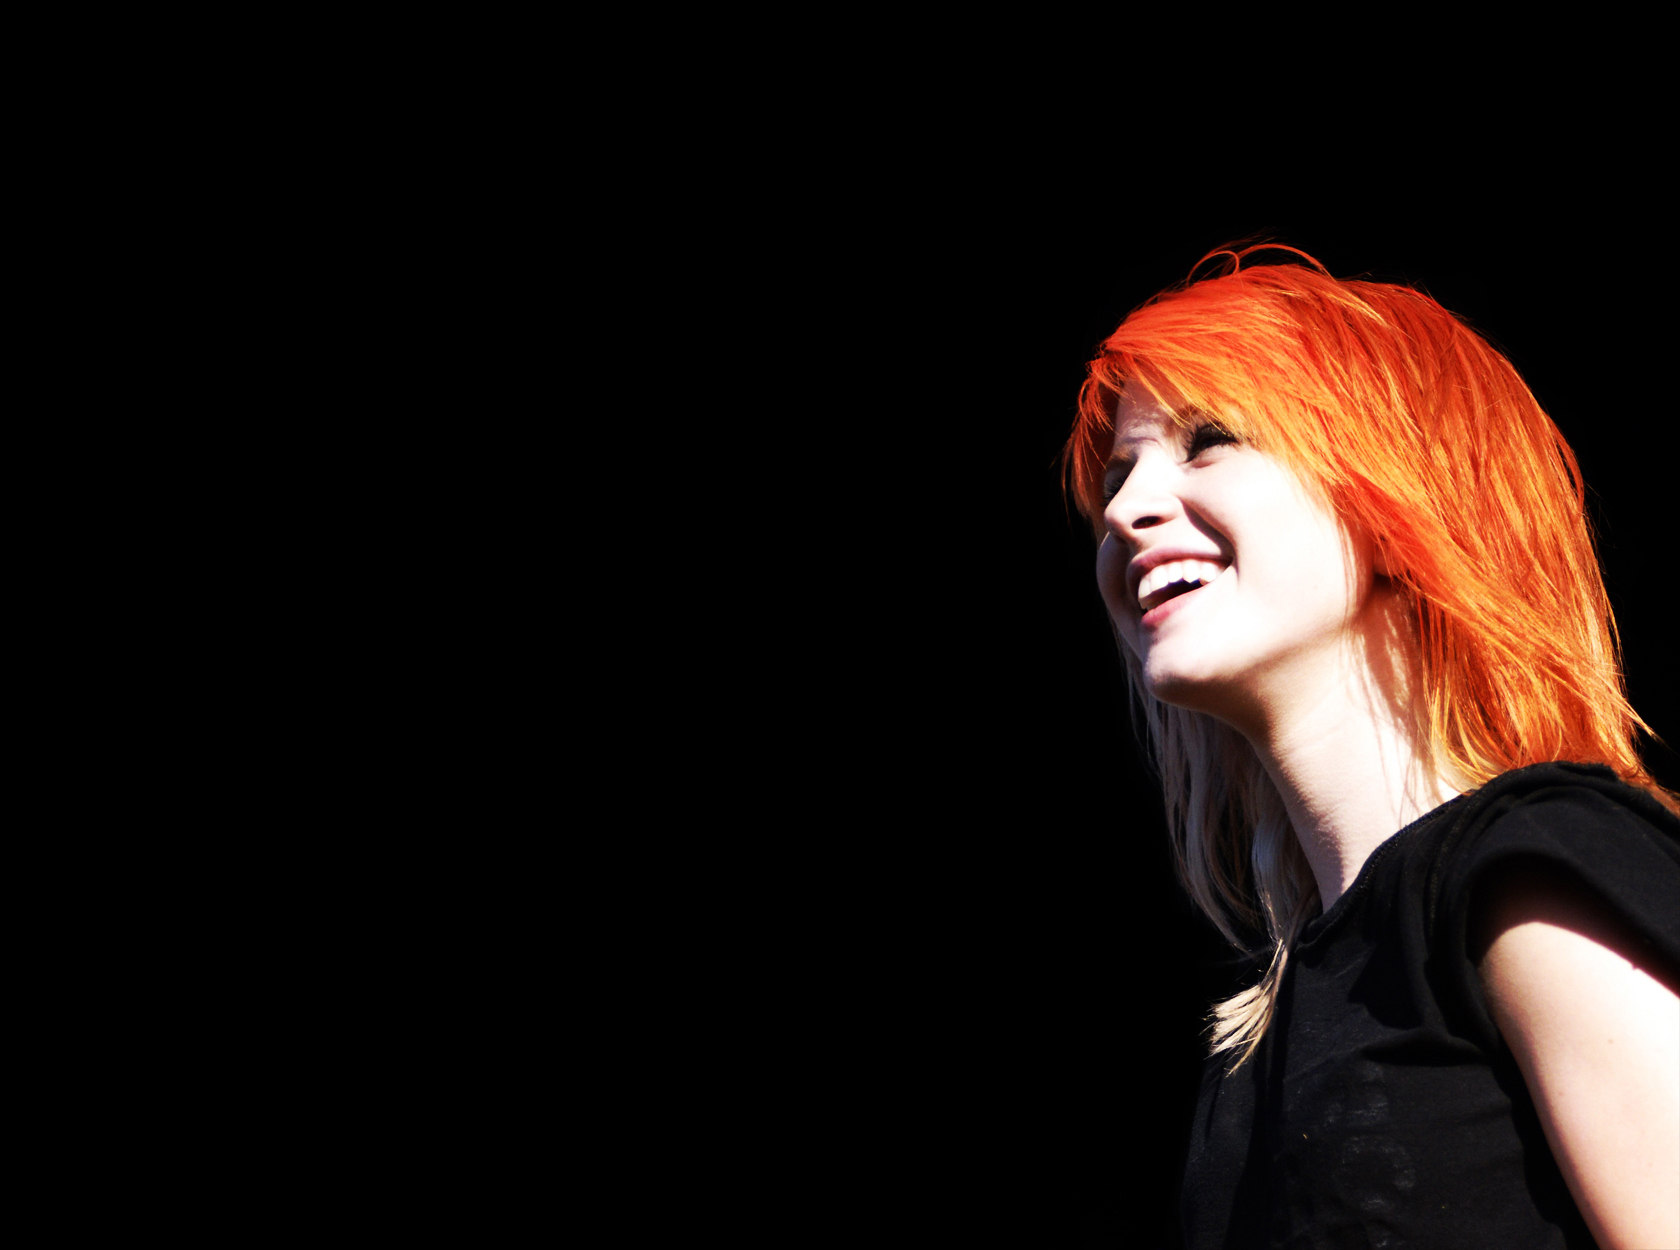 Hayley Williams Wallpaper 1680x1250 Hayley Williams Celebrity 1680x1250